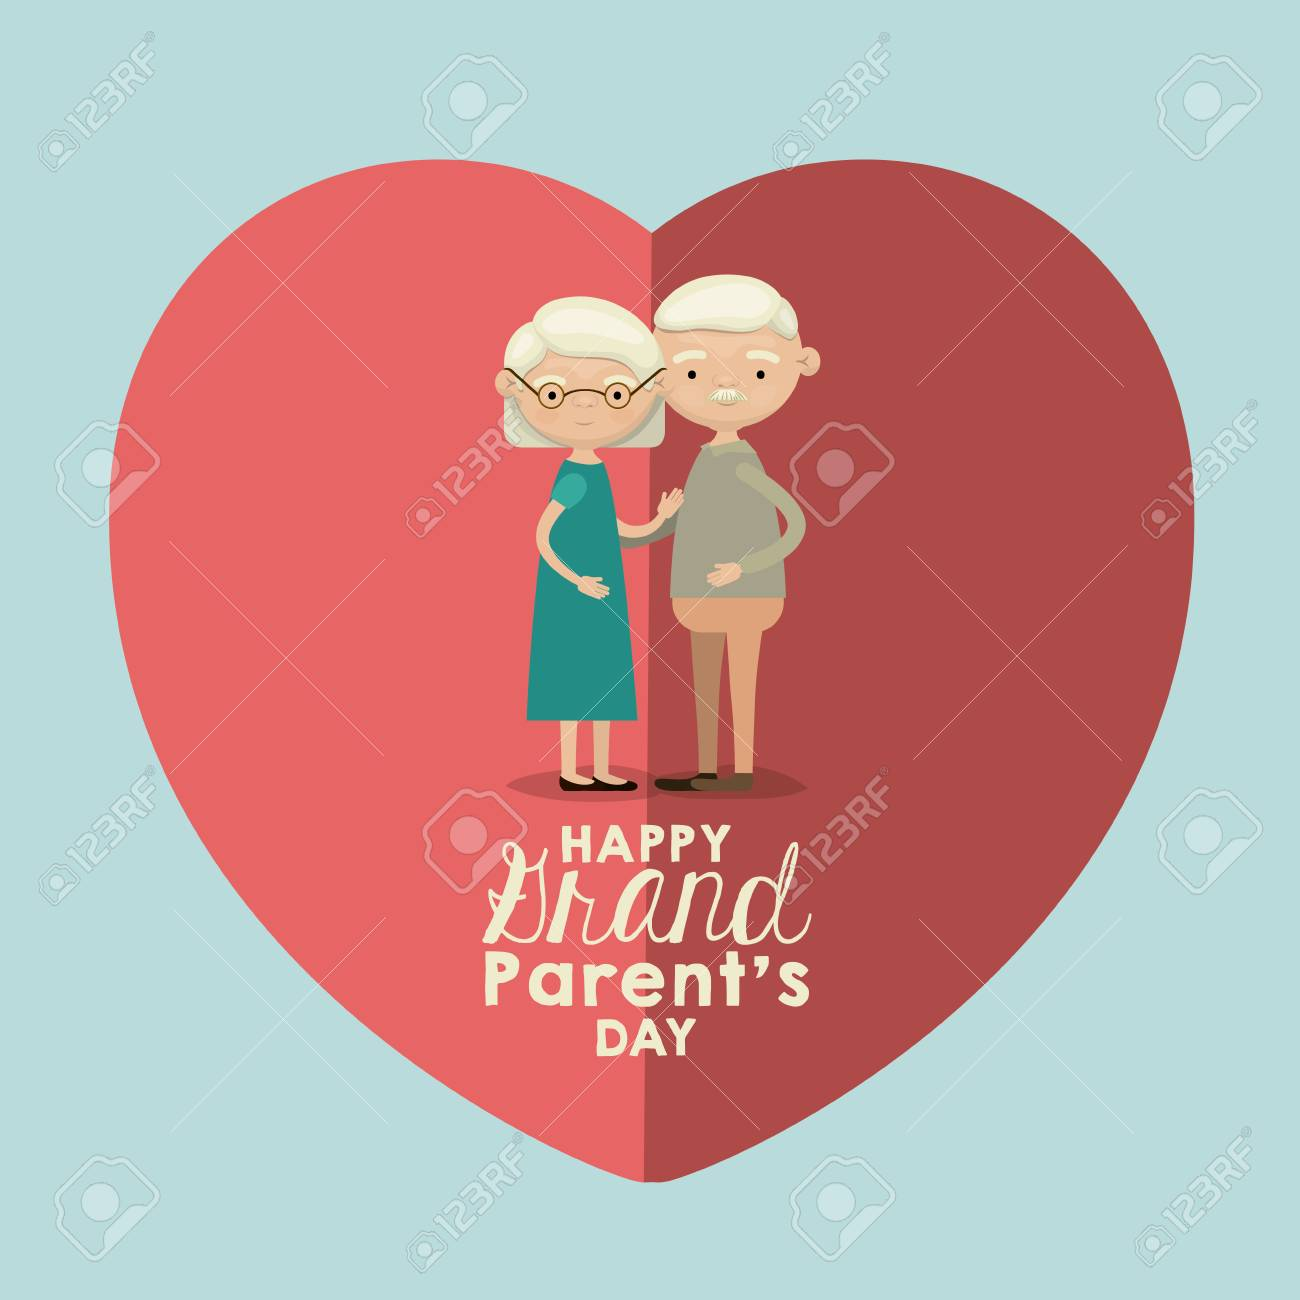 Light Blue Color Background Of Heart Shape Pink Greeting Card